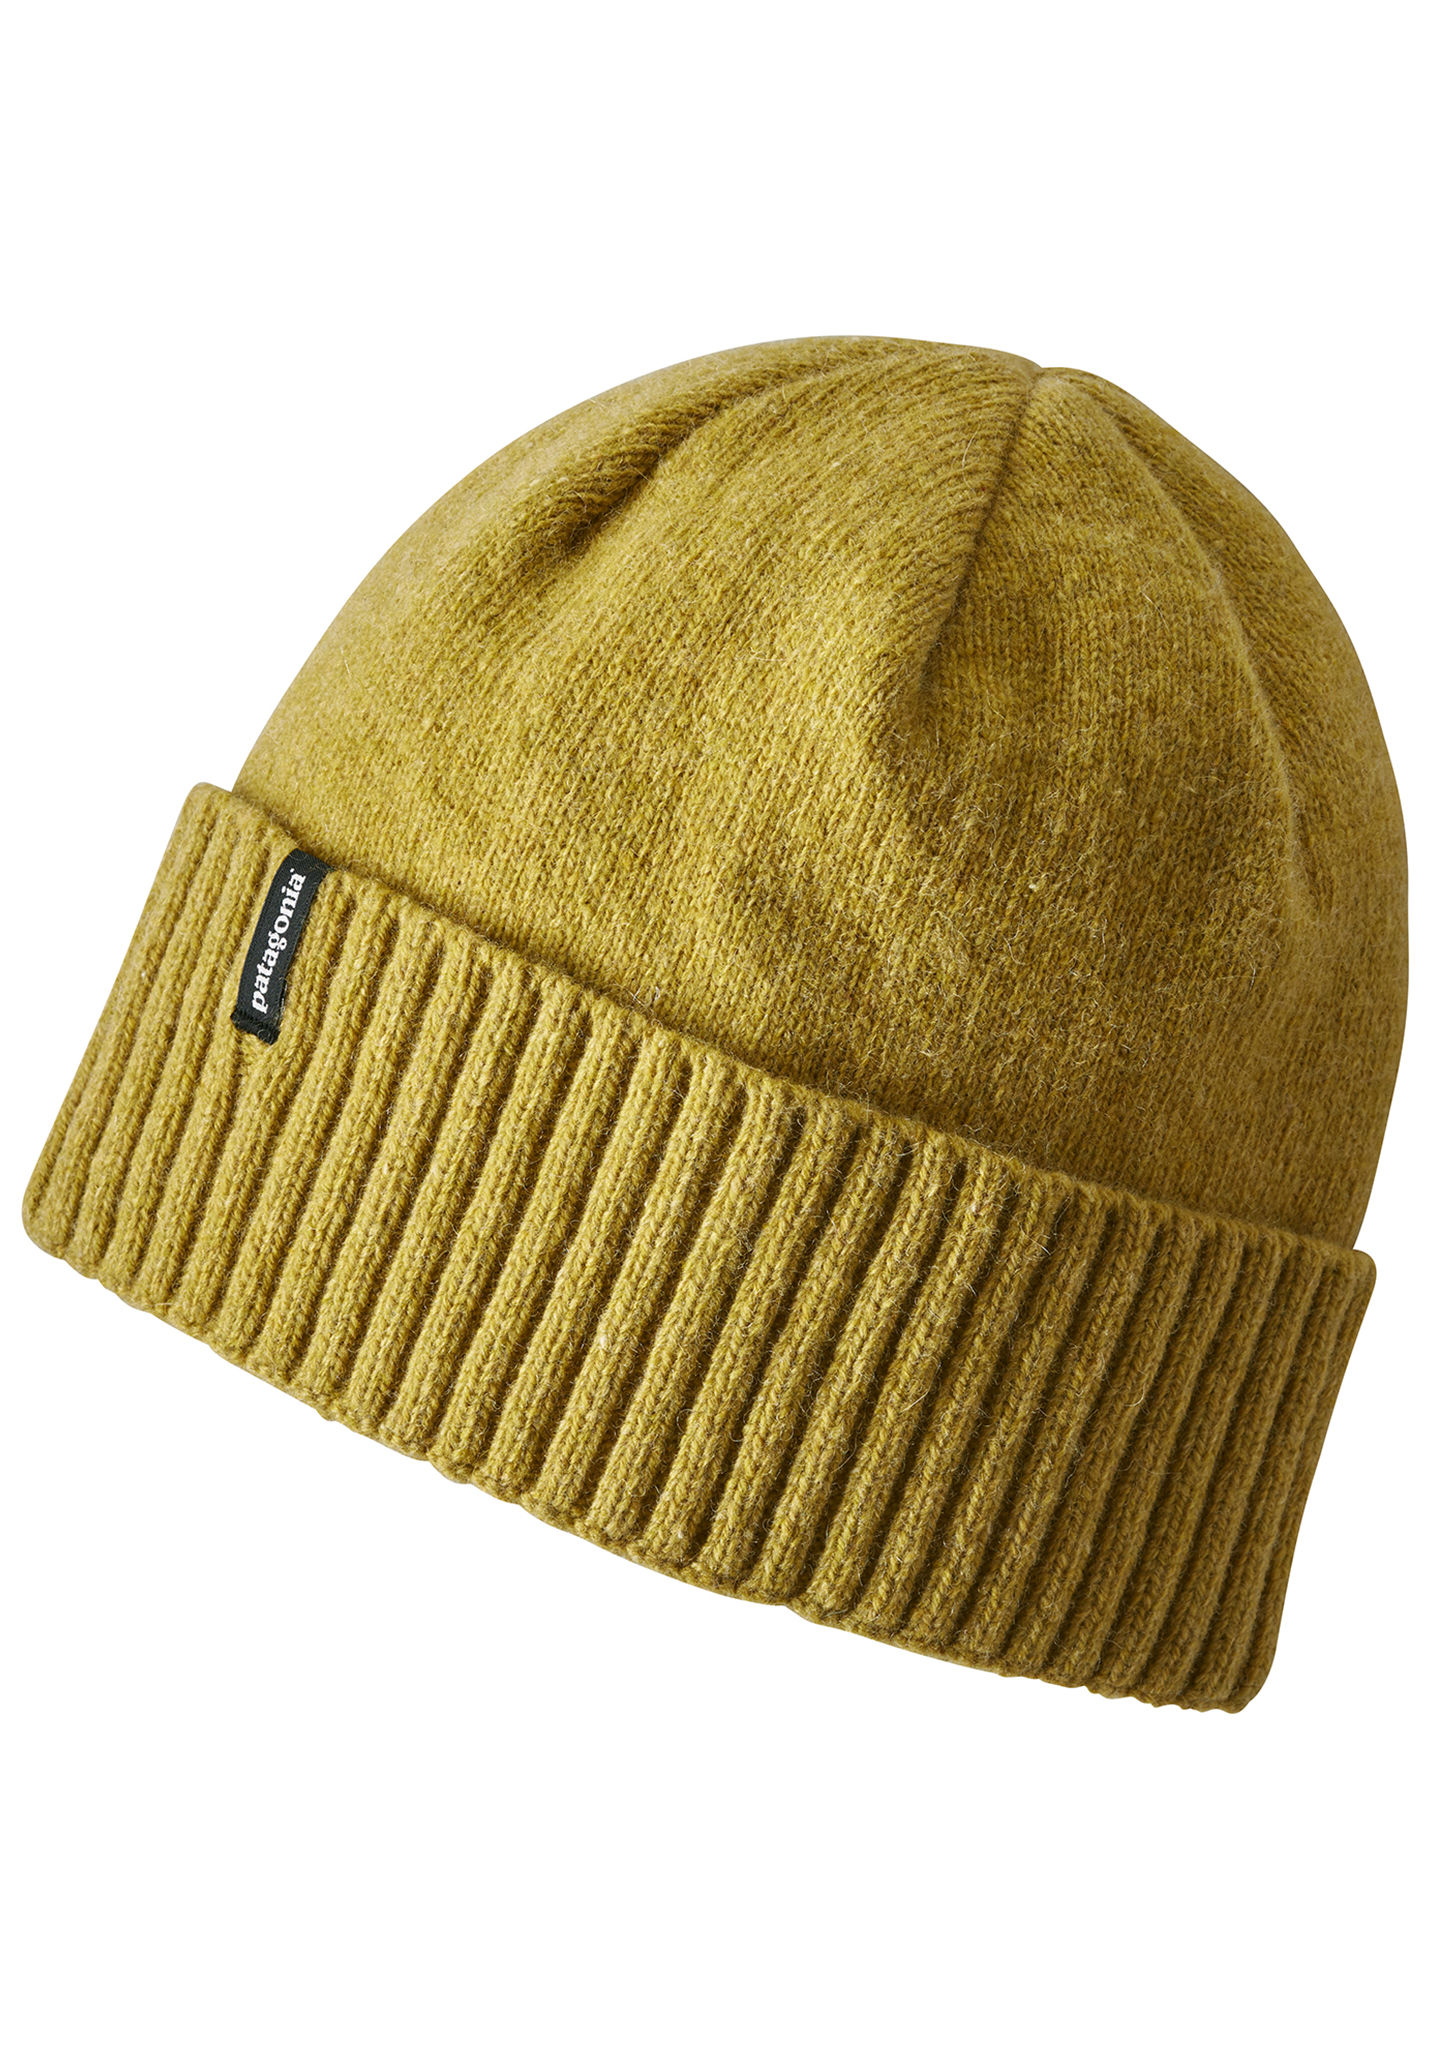 7d87a78a9fa PATAGONIA Brodeo - Bonnet - Vert - Planet Sports